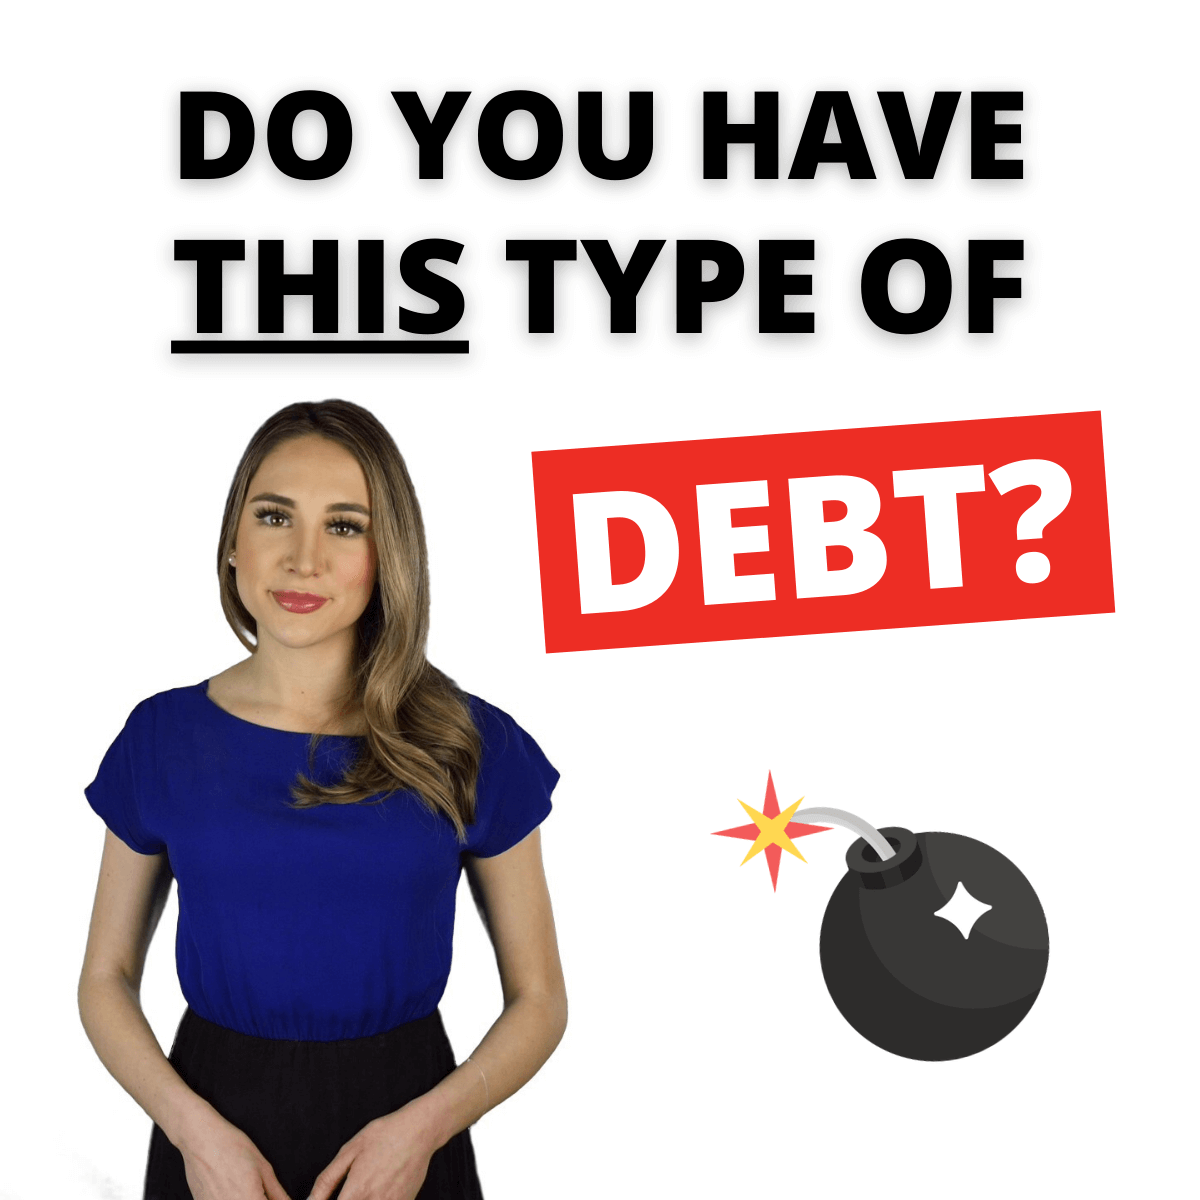 Do You Have This Type of Debt? Then You May Be in Trouble